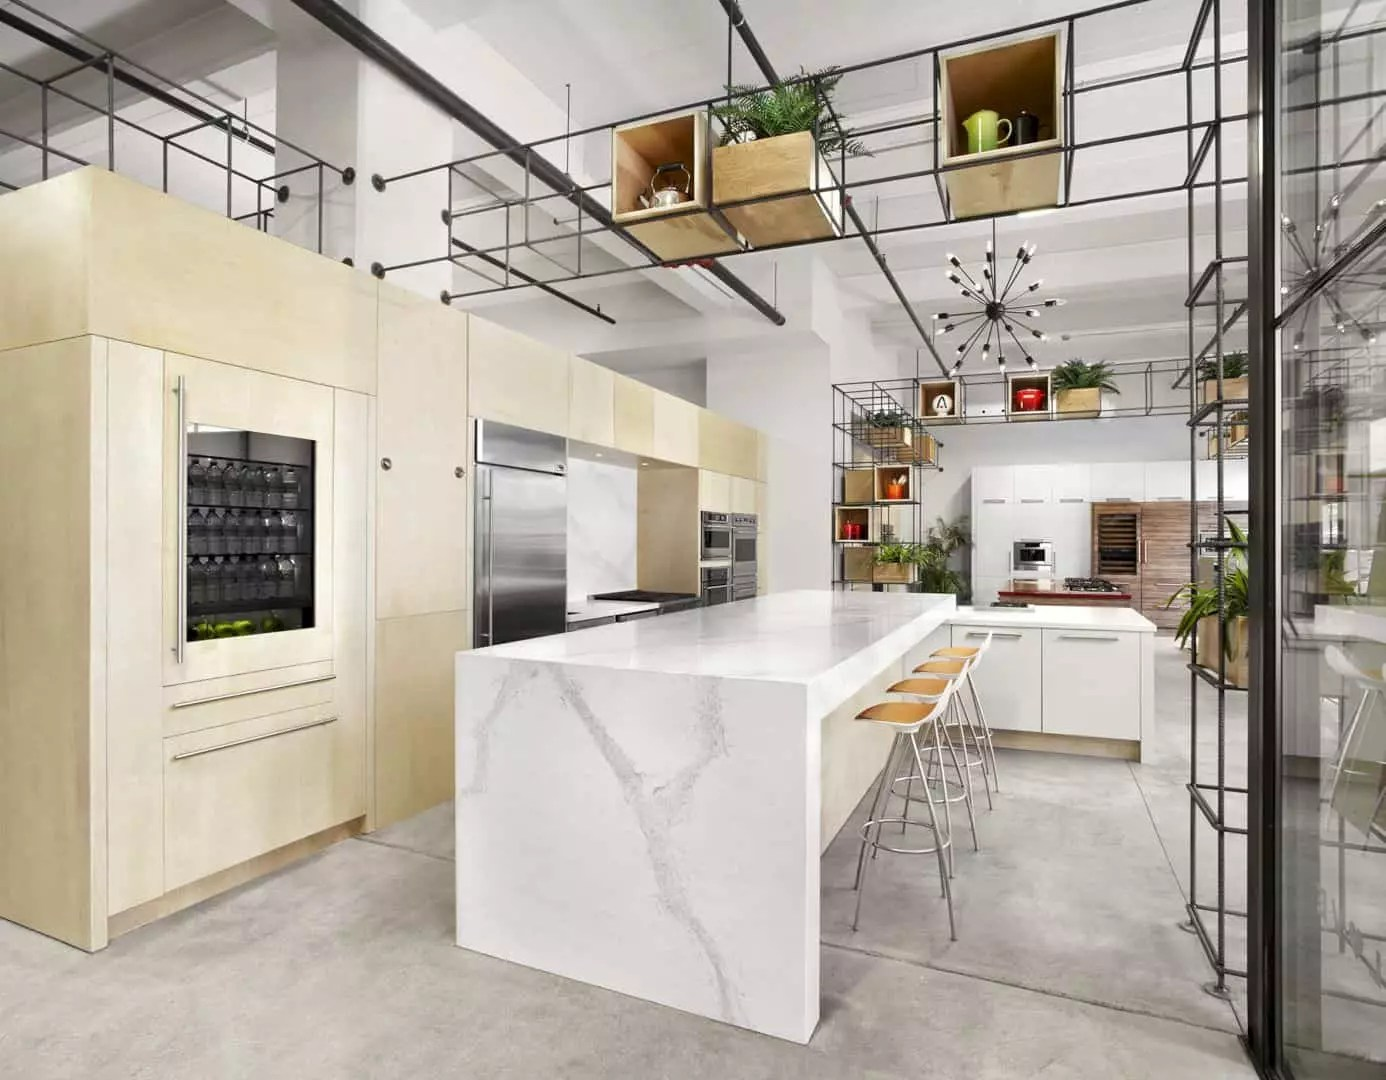 Appliance Love: Commercial Project of A Showroom with Modern Interior and Innovative Space